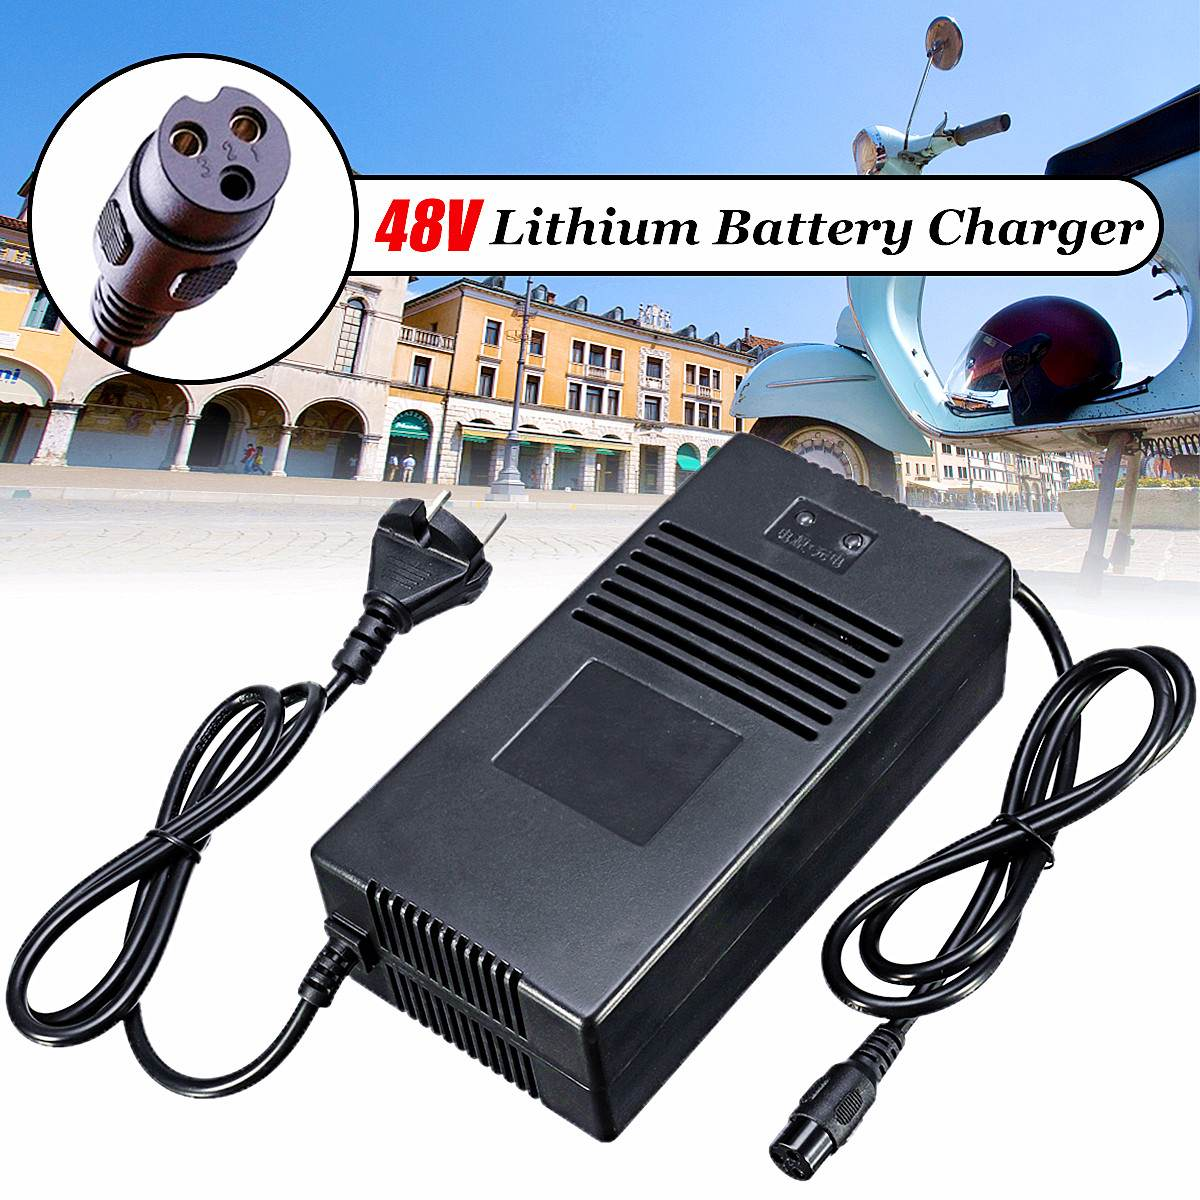 54.6V 4A Smart Lithium Battery Charger For 48V Lipo Li ion Electric Bike Scooter Power Tool Quick Charge Function